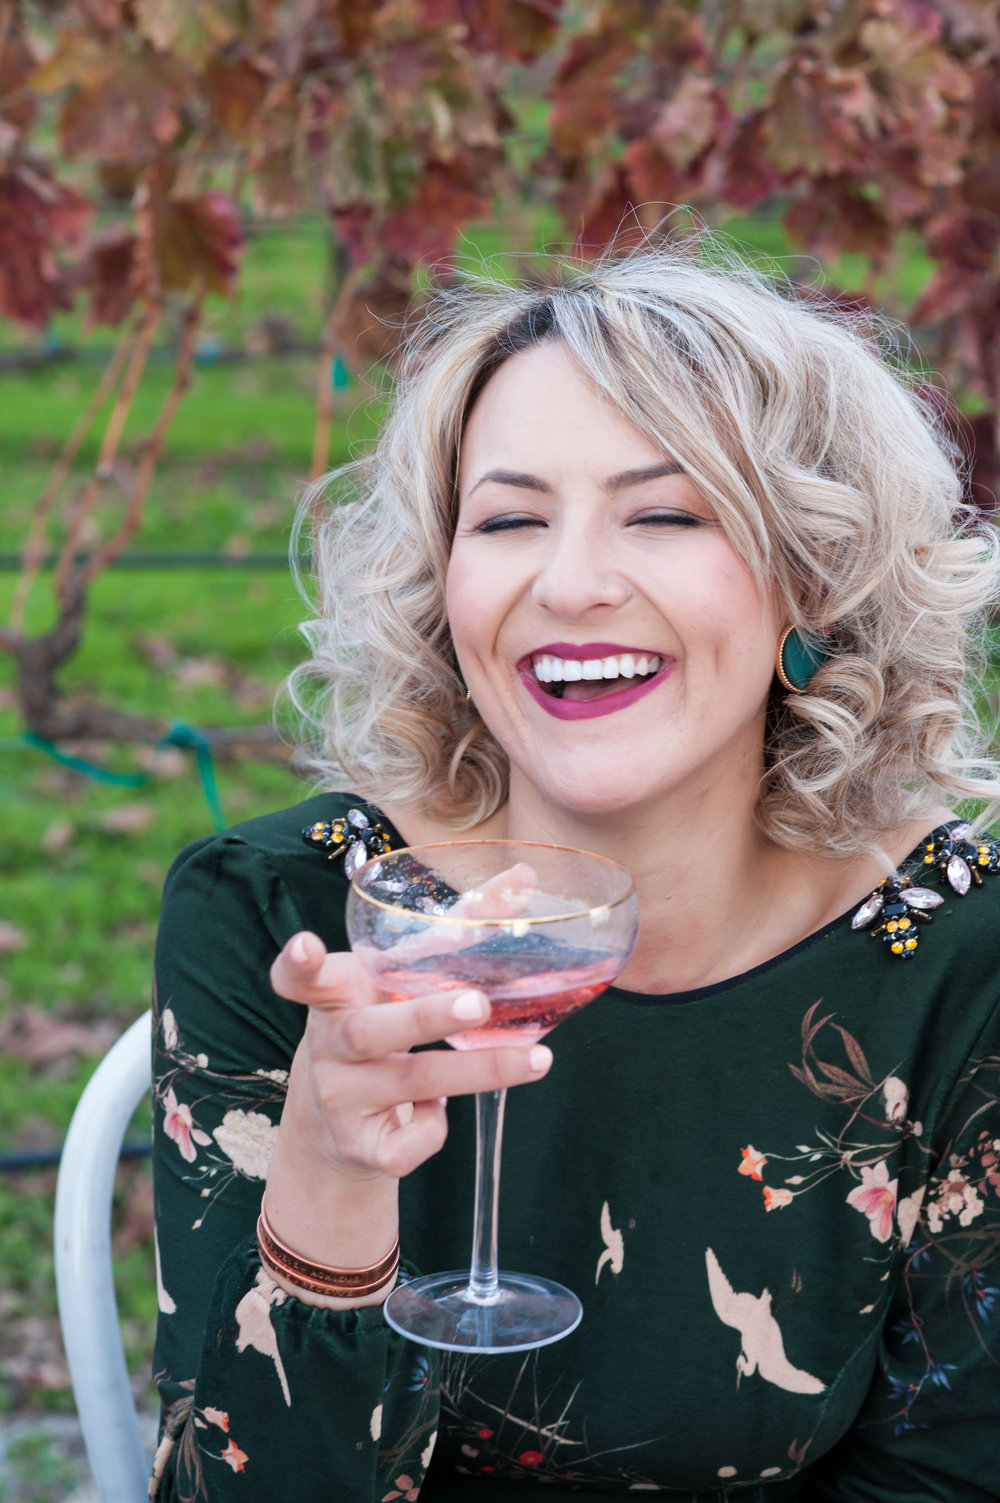 curly haired bridesmaid at engagement party cheersing to bride wearing hand made taste studio dress bold lipstick and soft glam makeup by kim baker beauty san jose california makeup artist